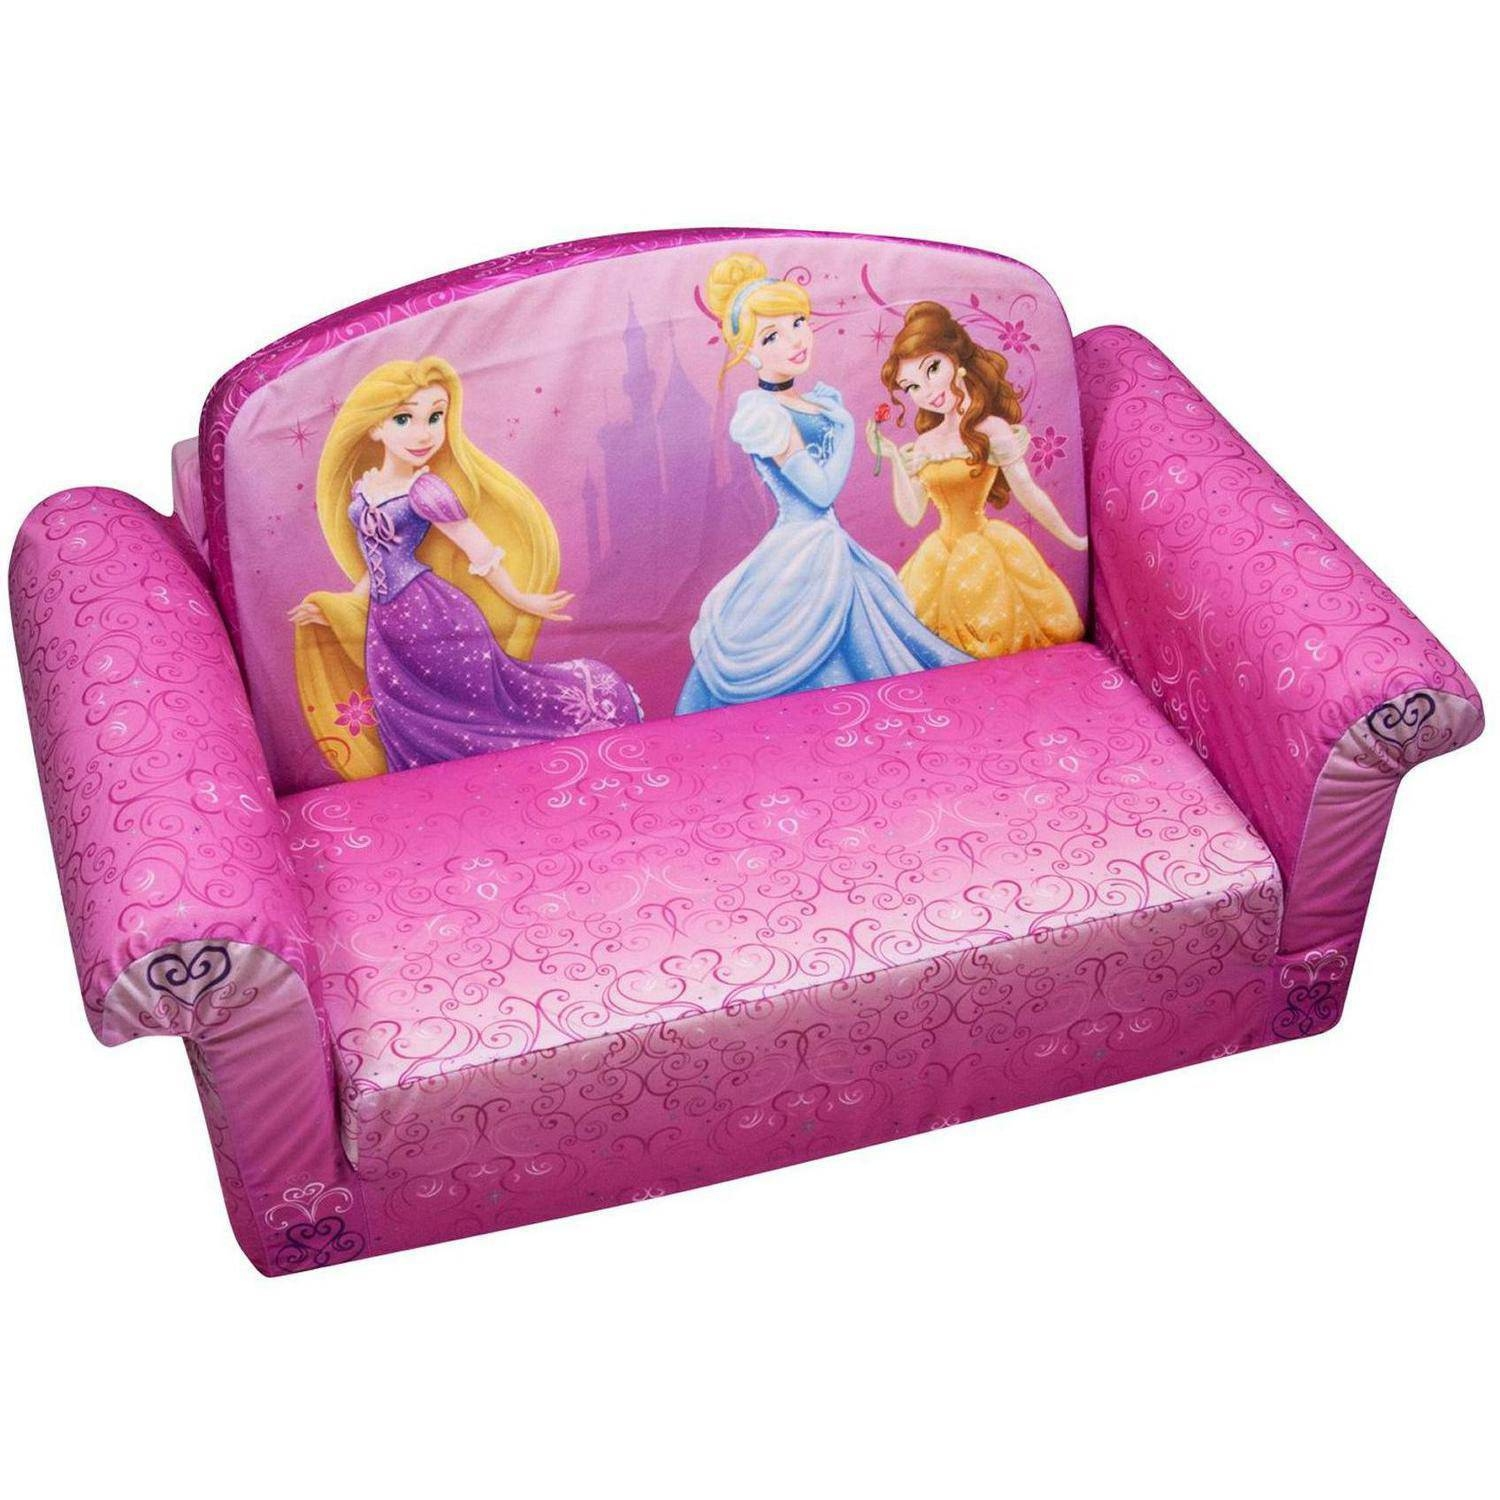 Marshmallow 2-In-1 Flip Open Sofa, Disney Princess - Walmart intended for Disney Princess Sofas (Image 8 of 15)